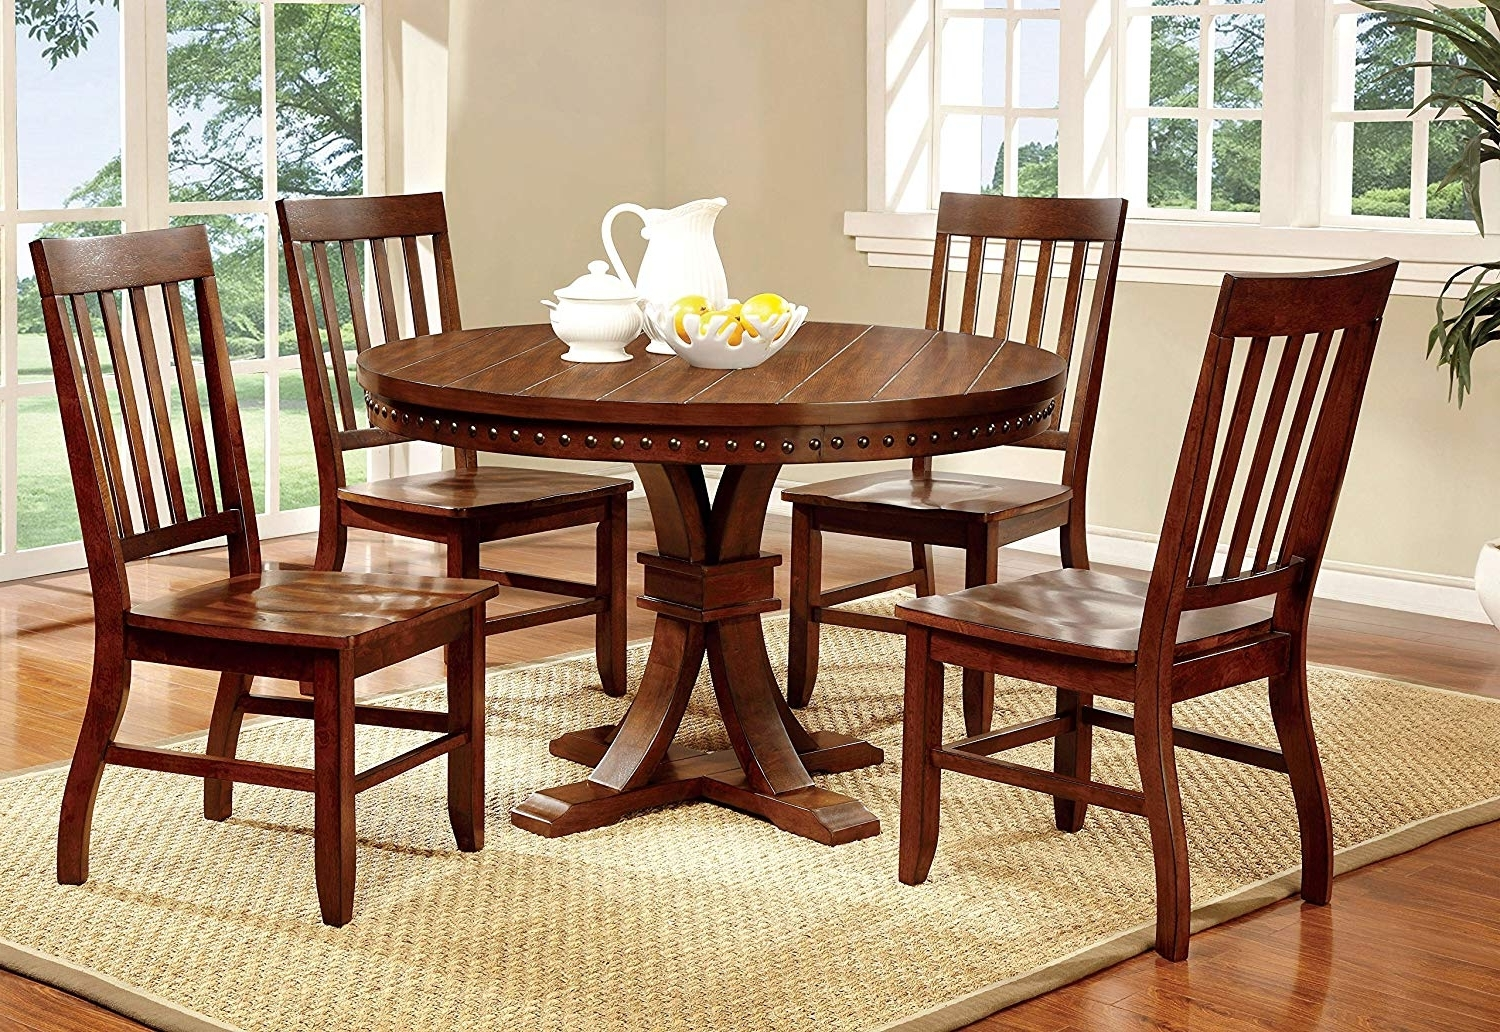 Latest Amazon – Furniture Of America Castile 5 Piece Transitional Round In Oak Dining Tables Sets (View 8 of 25)